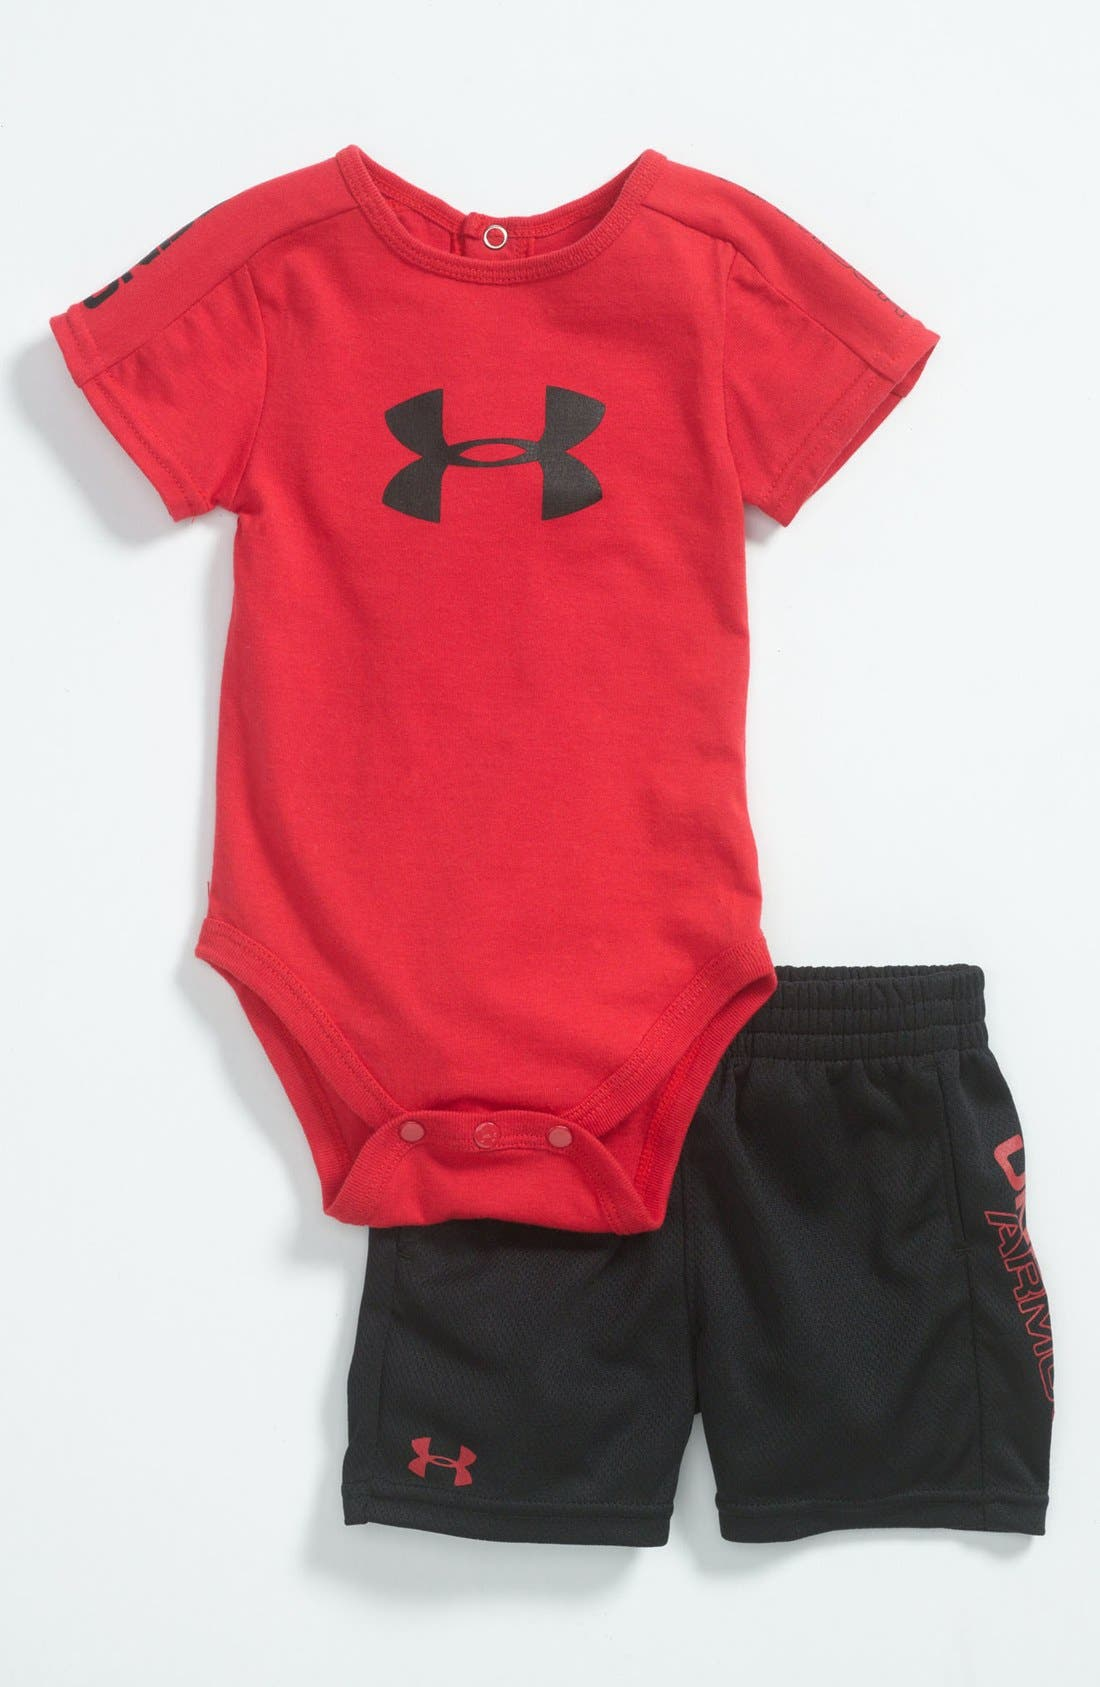 Main Image - Under Armour 'Integrity 2.0' Bodysuit & Shorts (Baby)